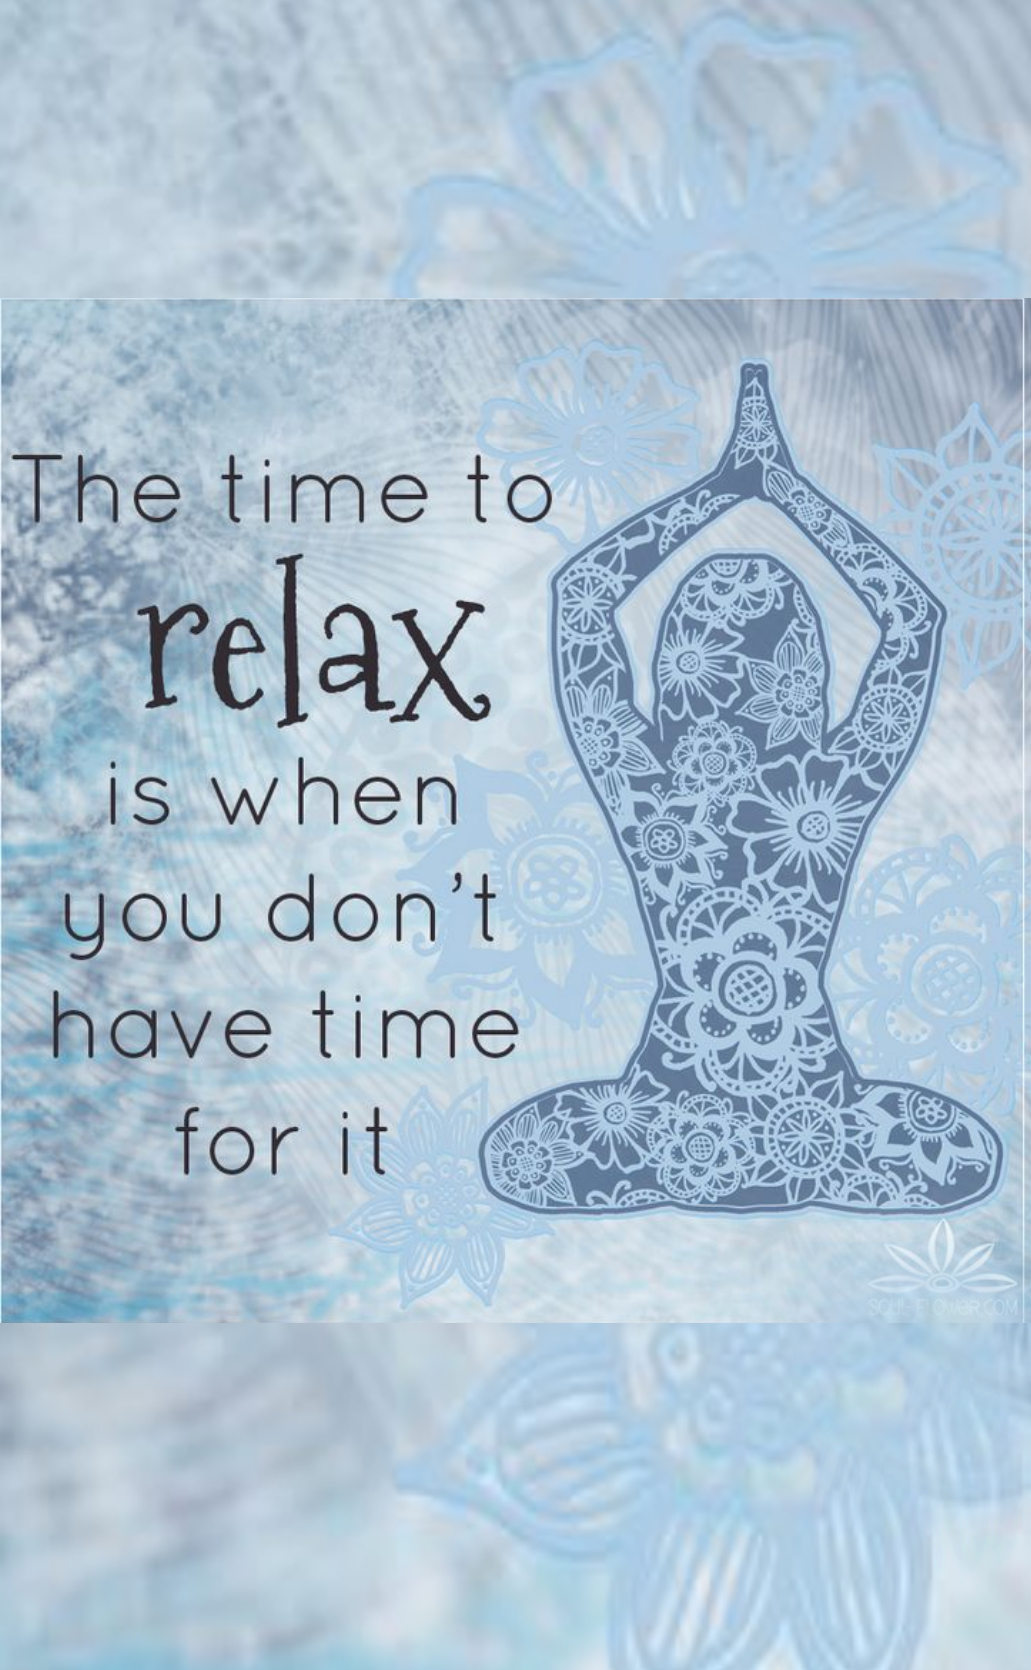 Relax_2